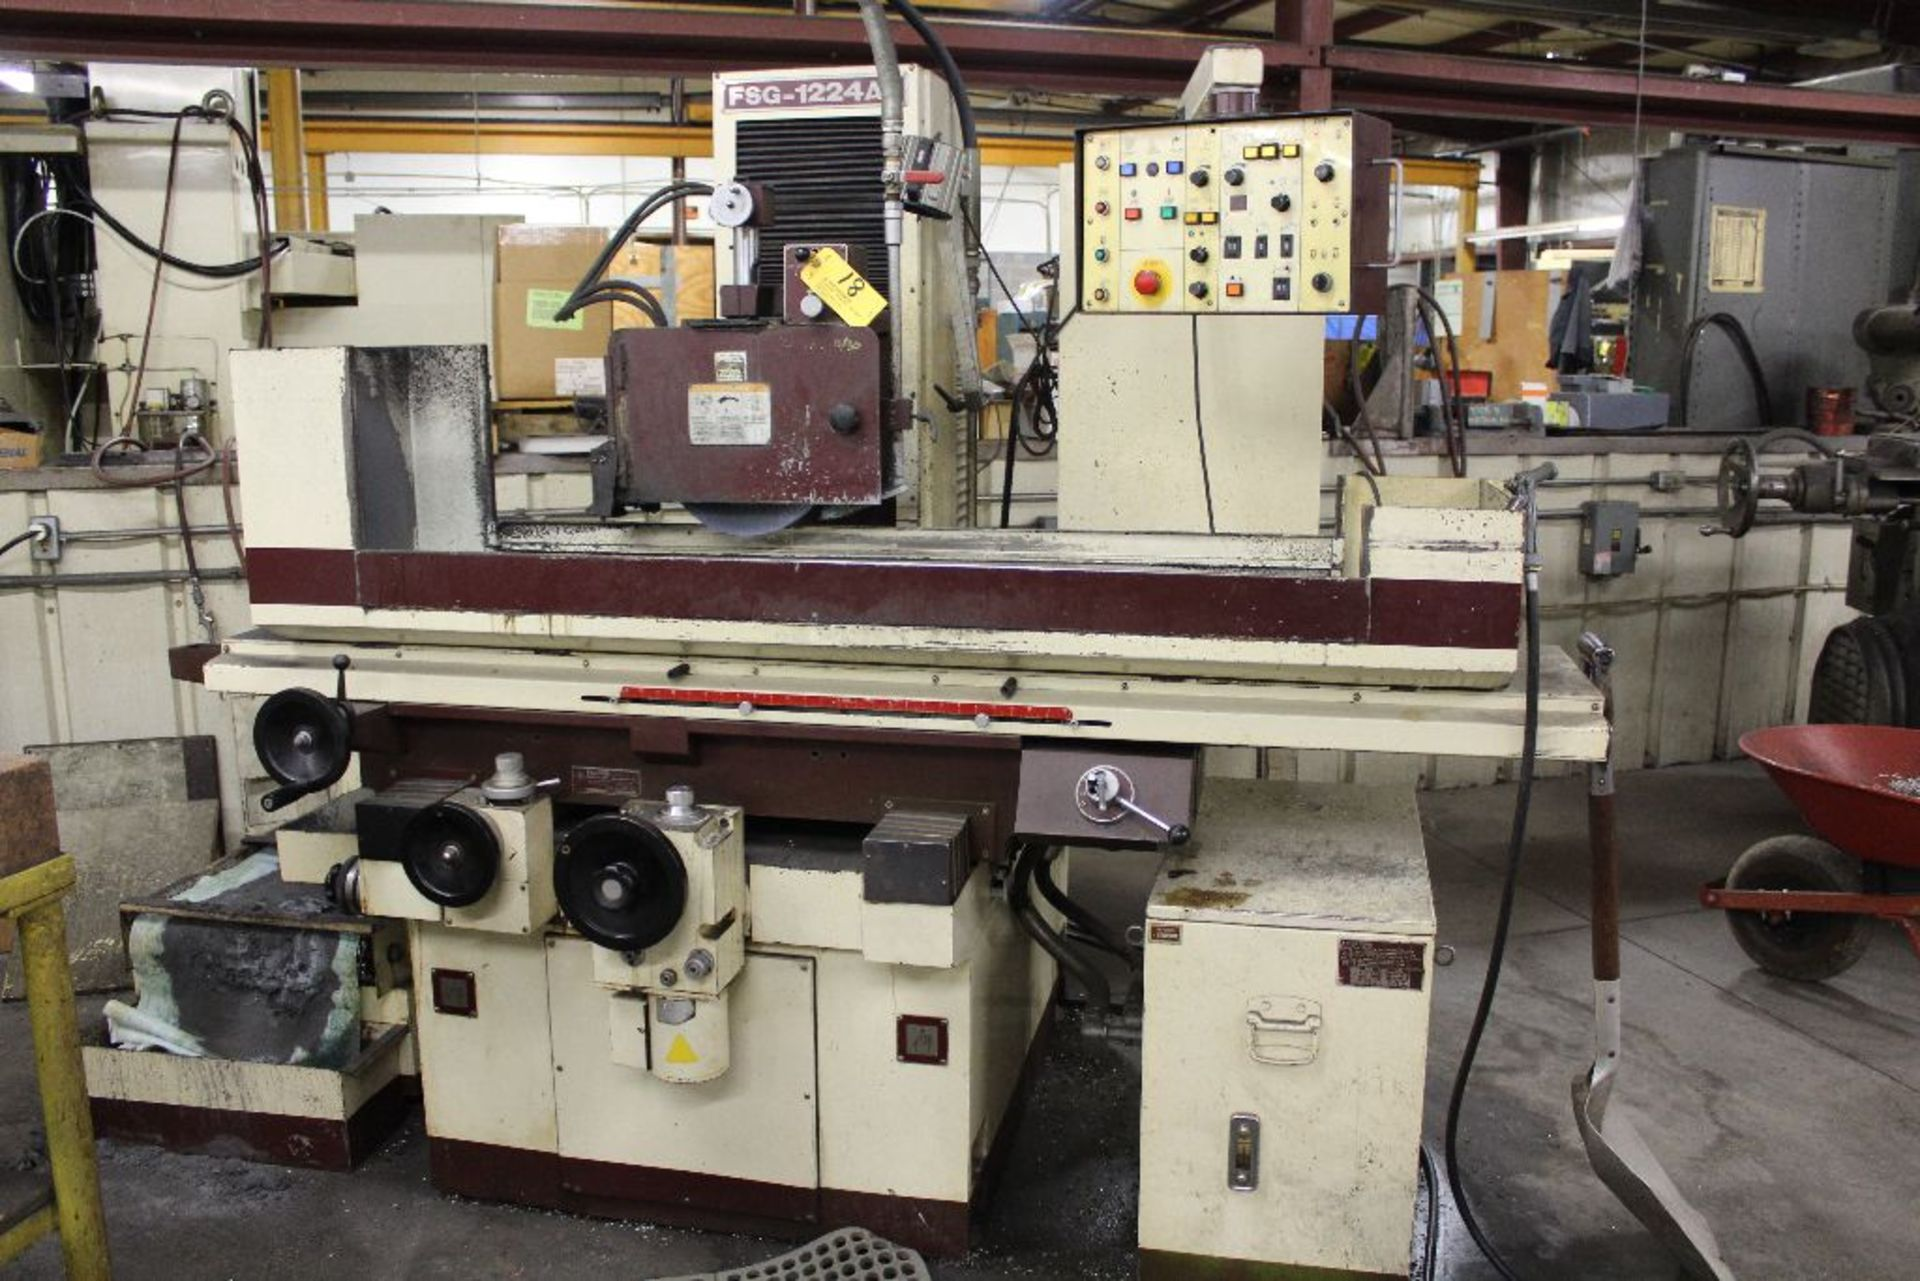 """Lot 018 - Chevalier Surface grinder, model FSG-1224AD, sn F1871004, 16 x 32"""", magnetic chuck 24"""" x 12""""."""